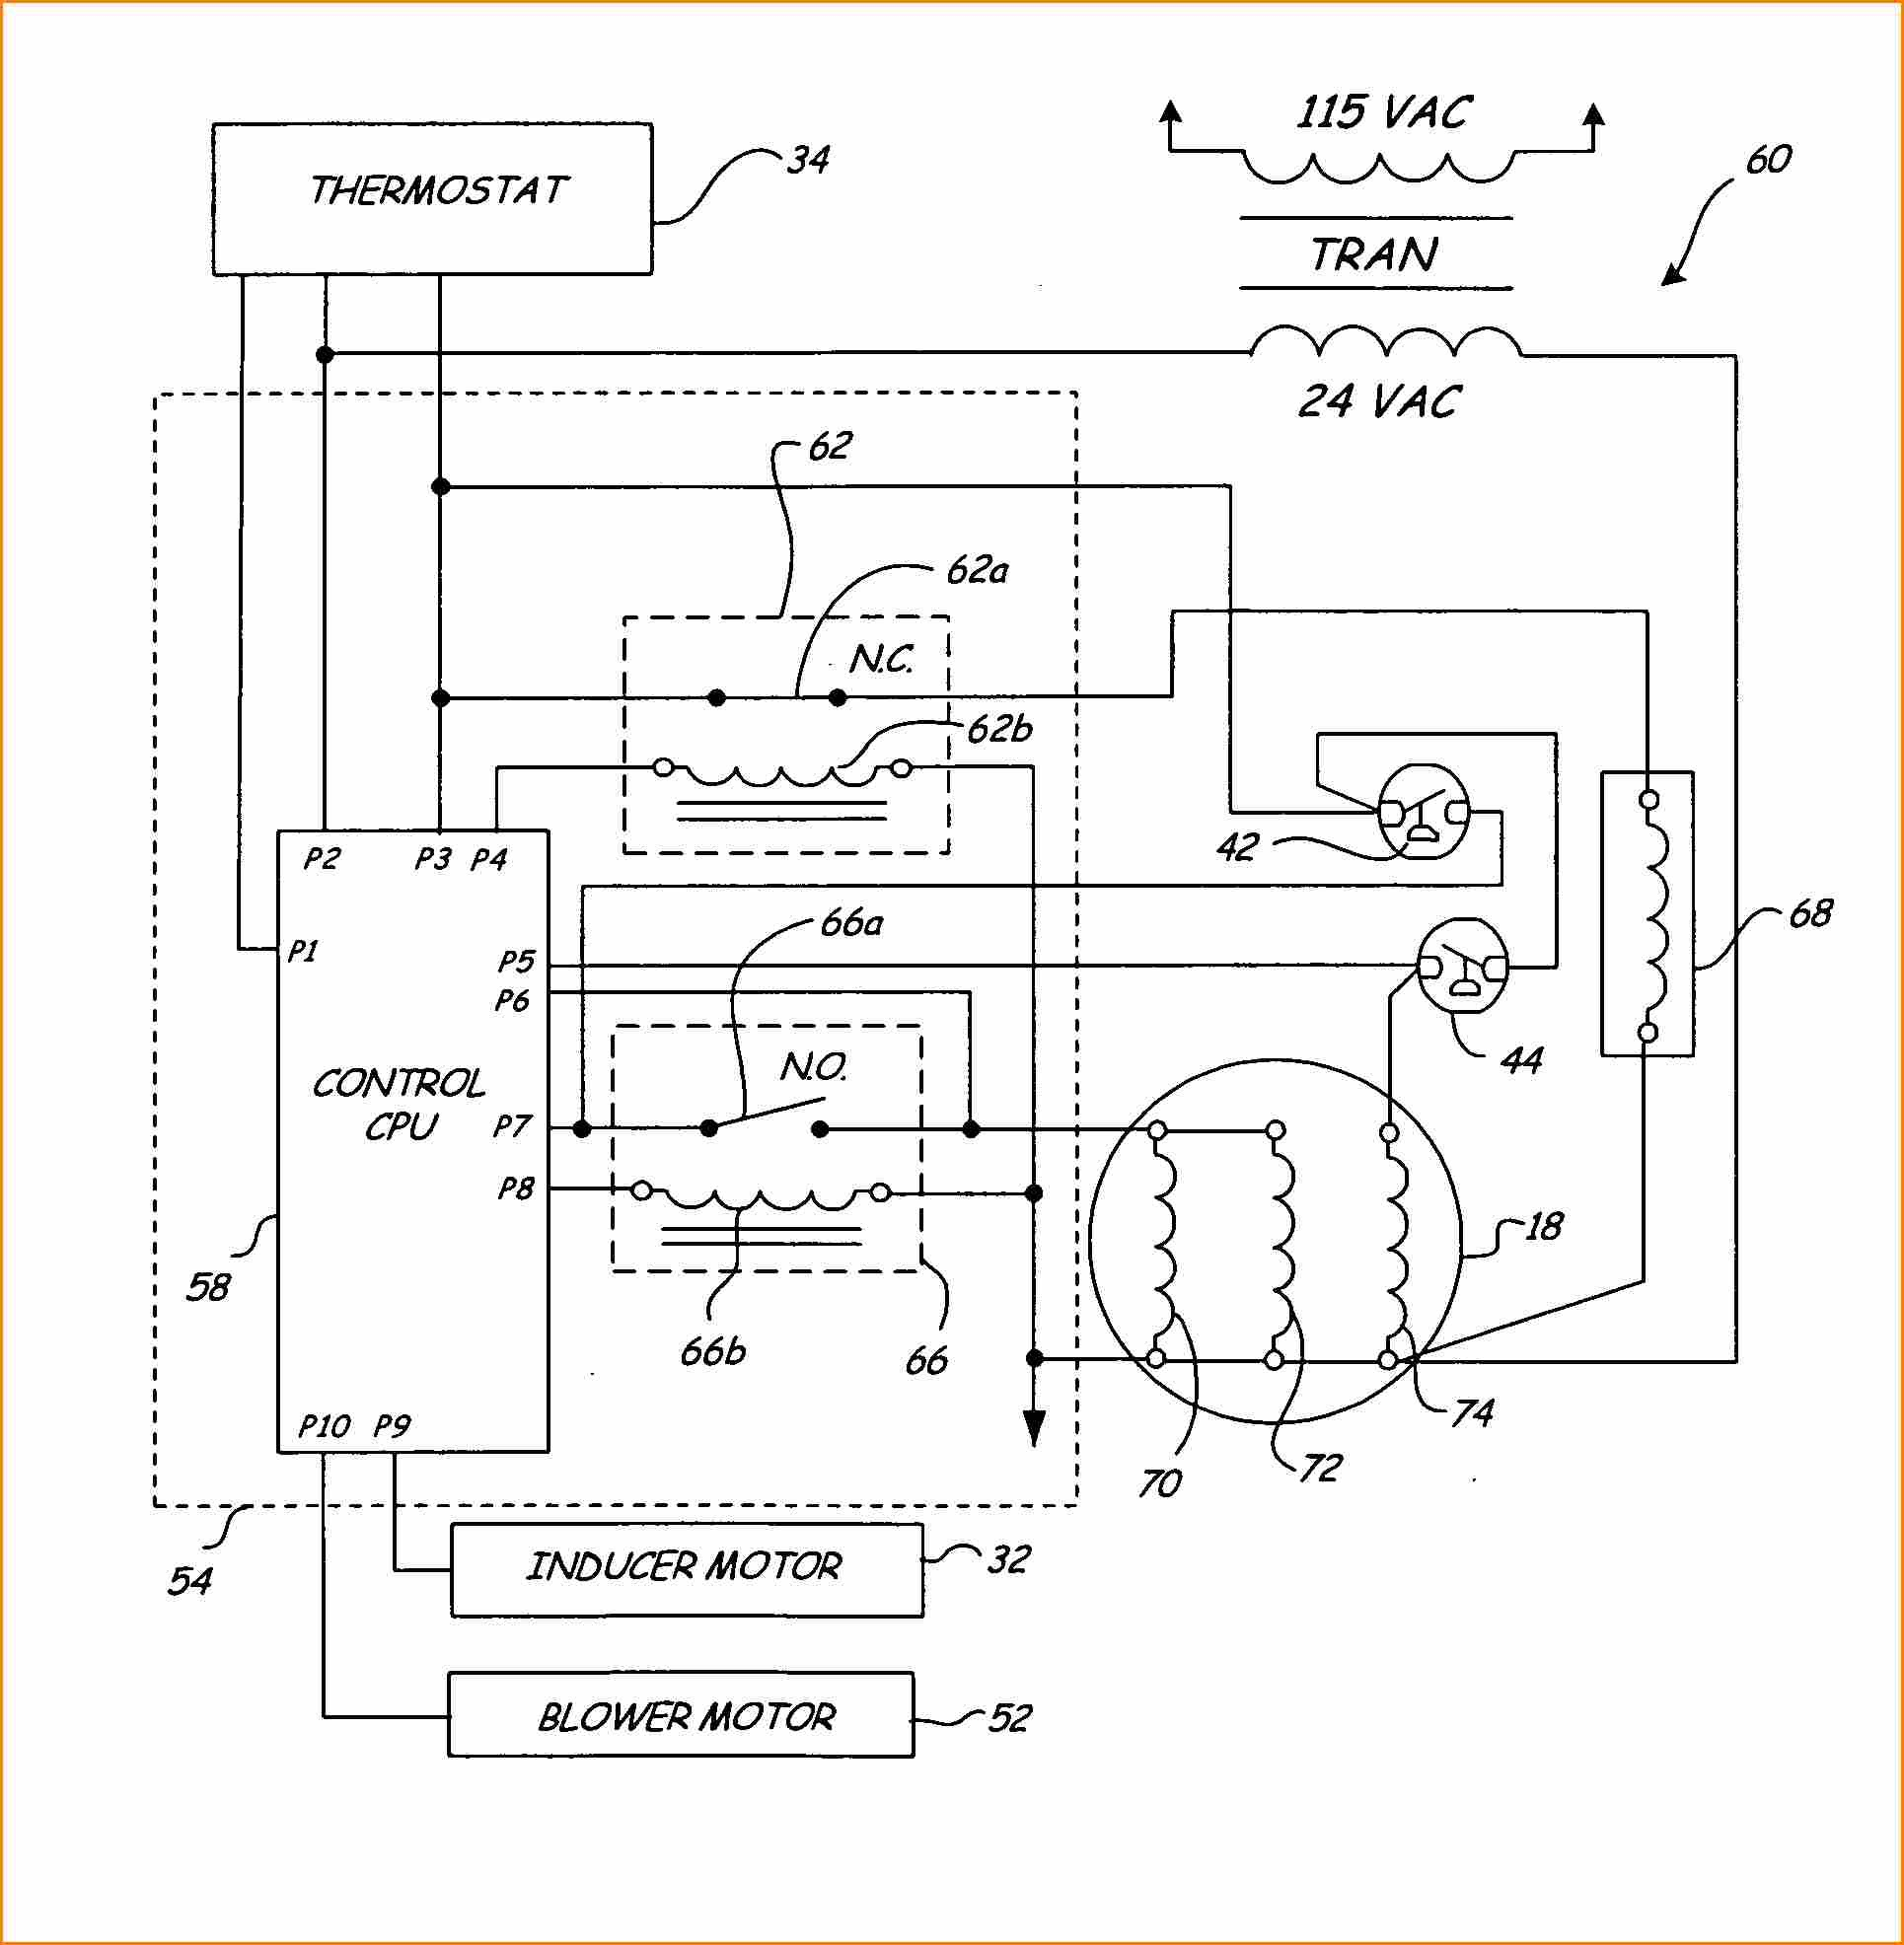 Admirable Gas Heater Wiring Diagram Wiring Library Wiring Cloud Timewinrebemohammedshrineorg